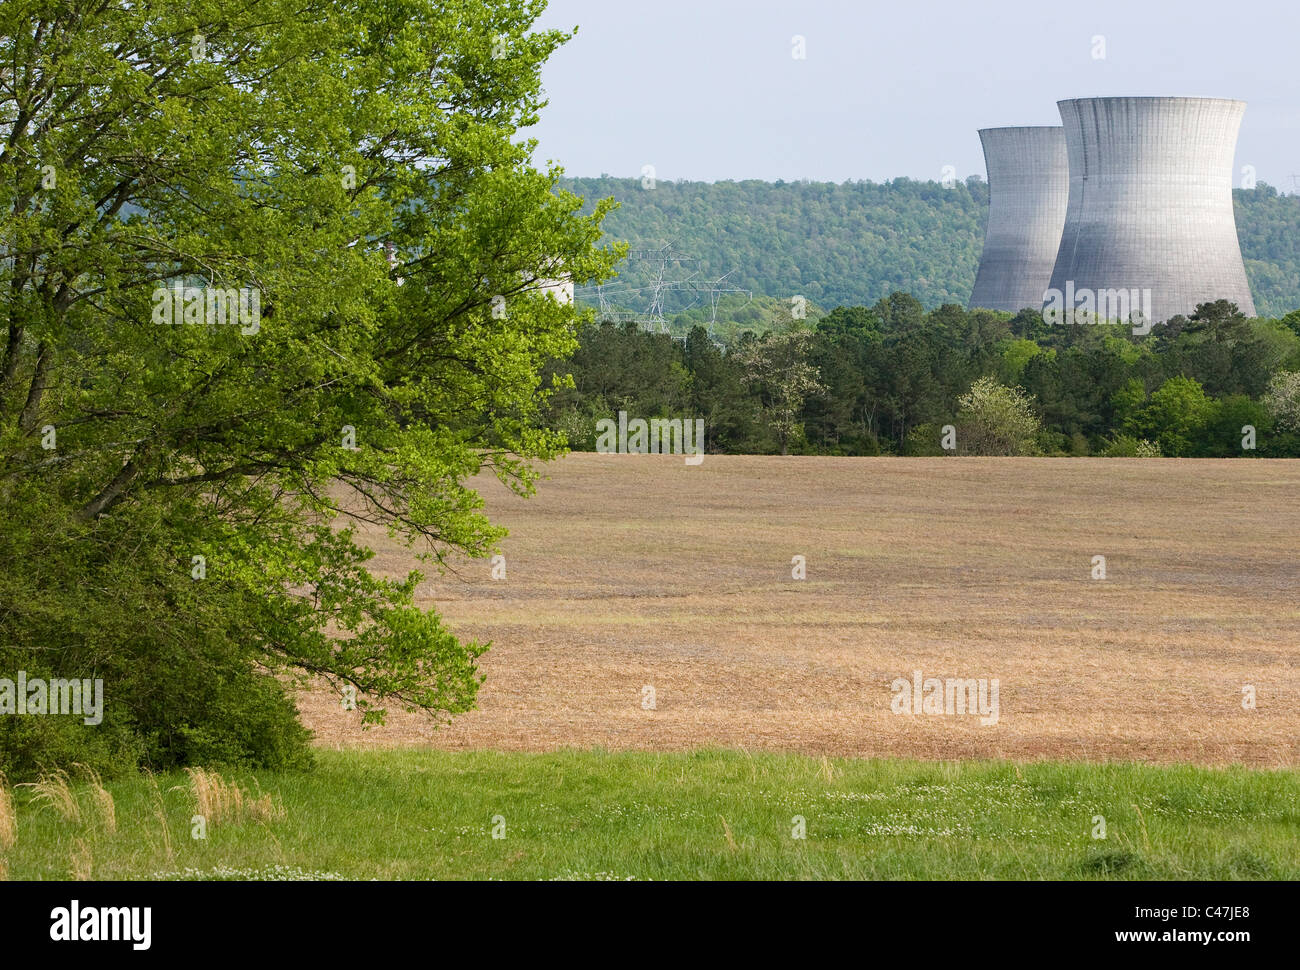 The unfinished Bellefonte Nuclear Power Plant. Stock Photo